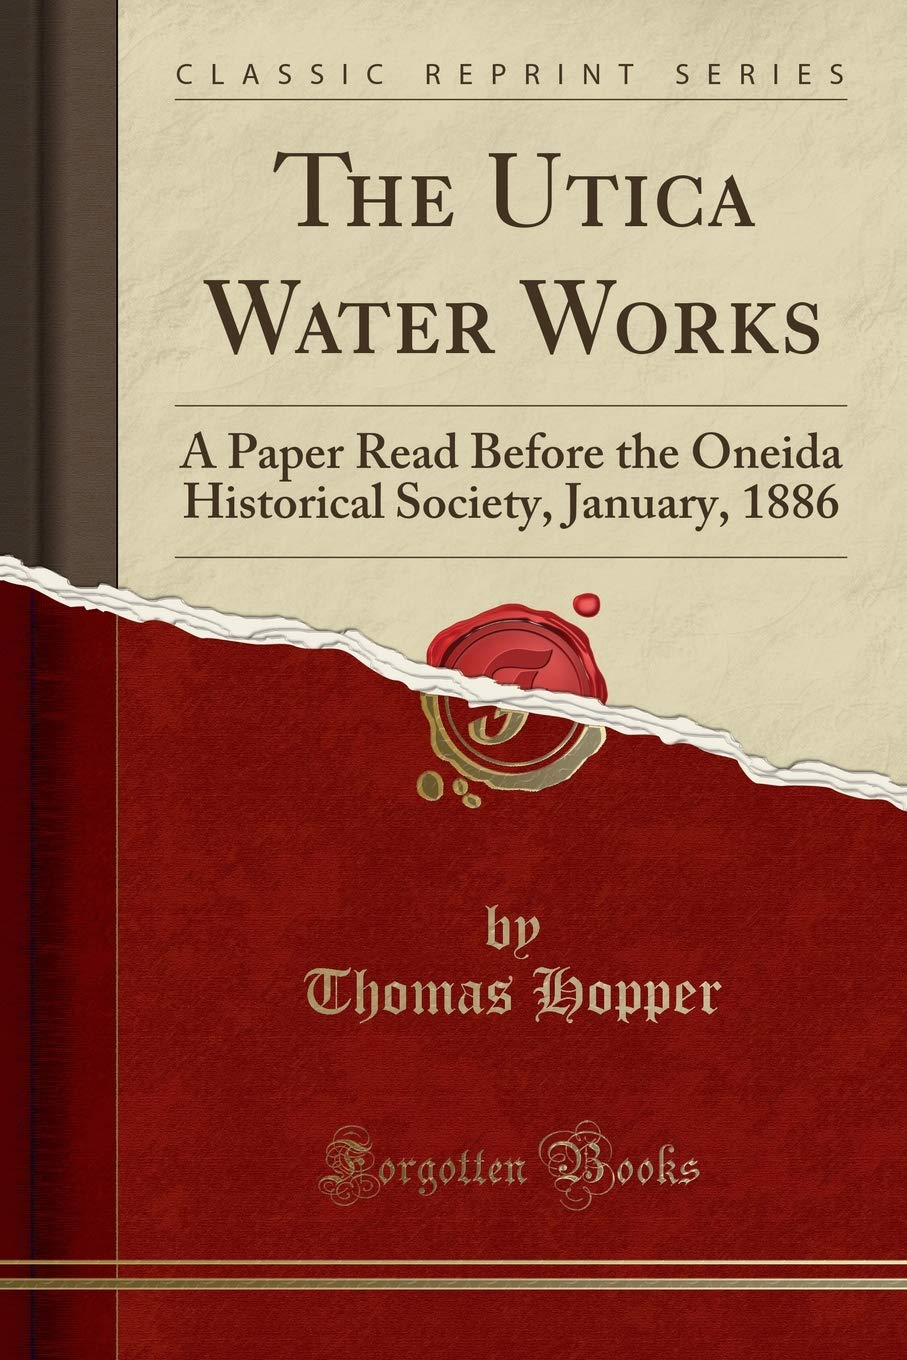 The Utica Water Works: A Paper Read Before the Oneida Historical Society, January, 1886 (Classic Reprint) pdf epub